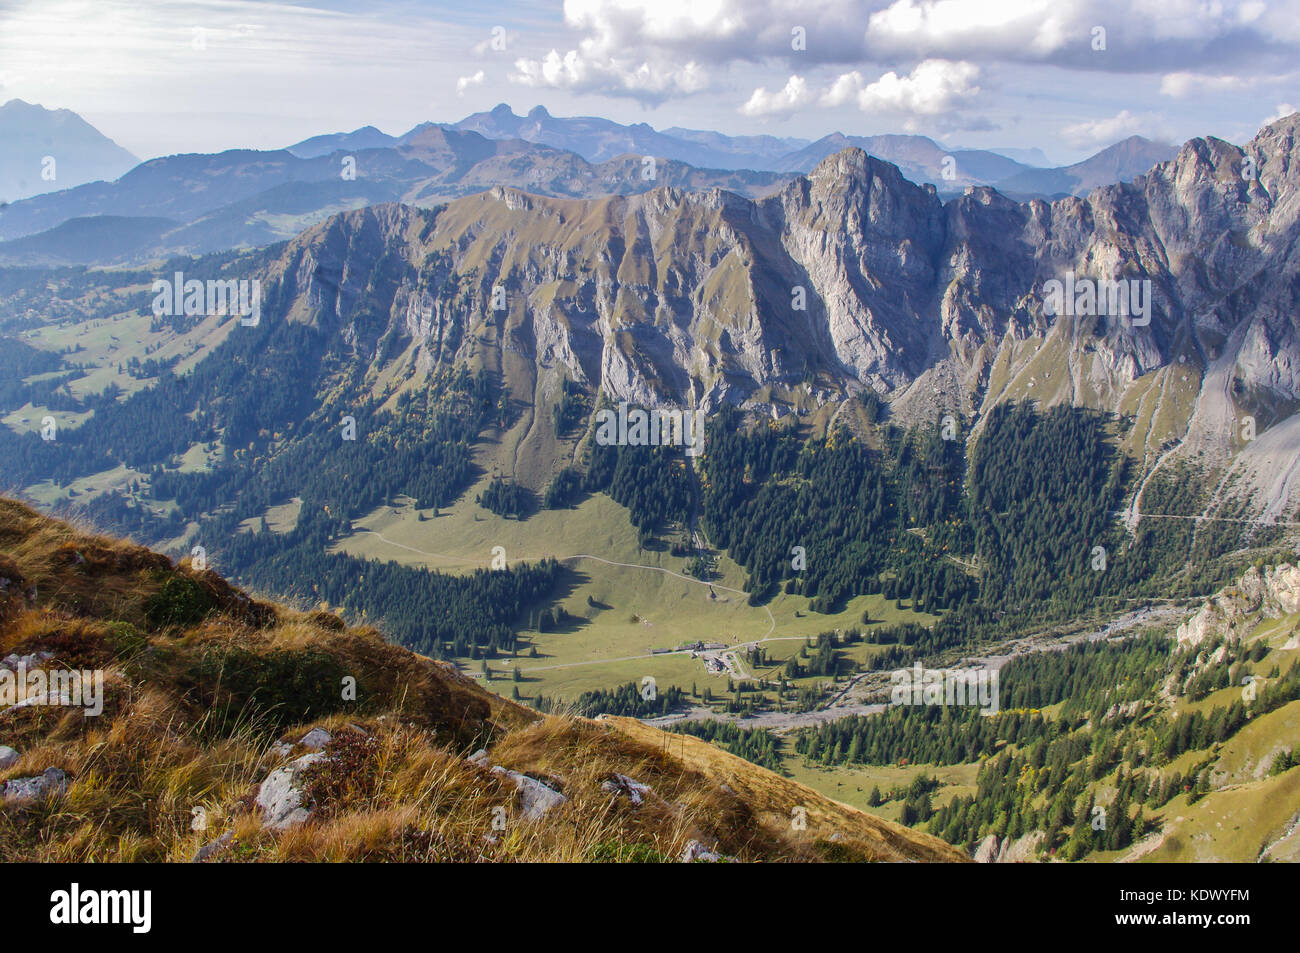 Alpine View of the Chaux Ronde mountain ridge and mountain valley in the Swiss Alps. Vaude, Switzerland - Stock Image